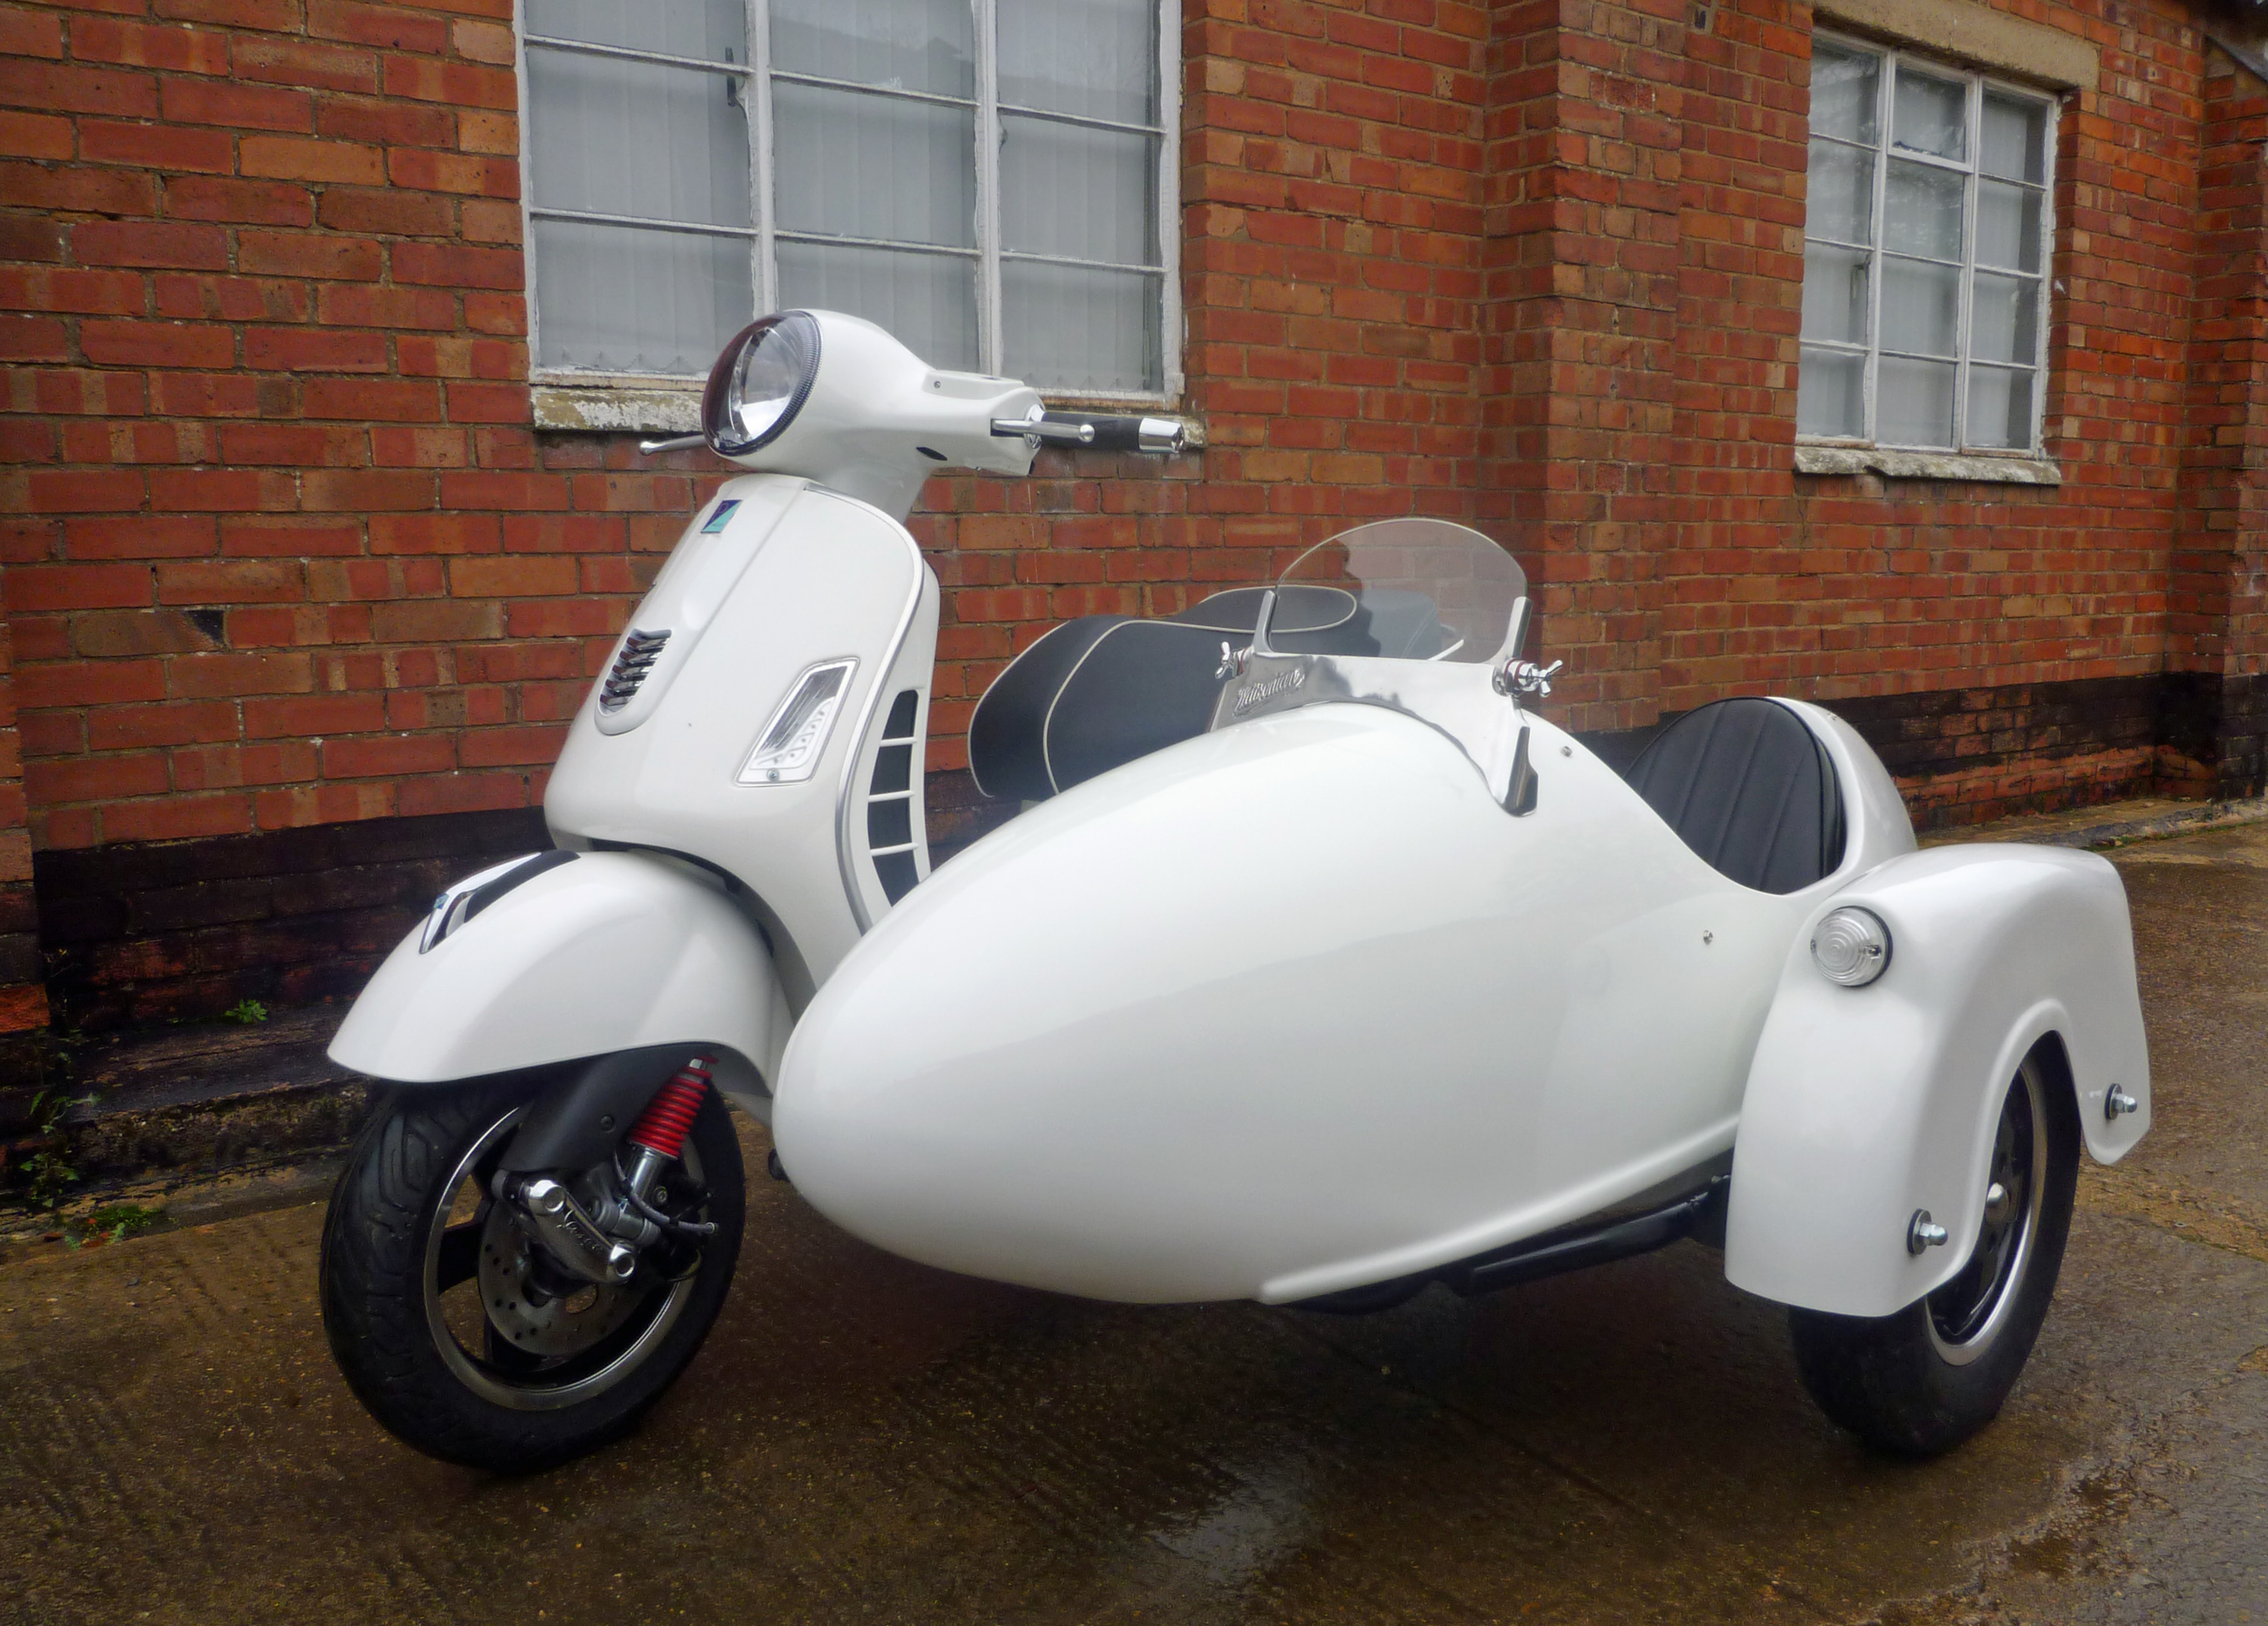 New Sidecar For 2016 Watsonian Sidecars